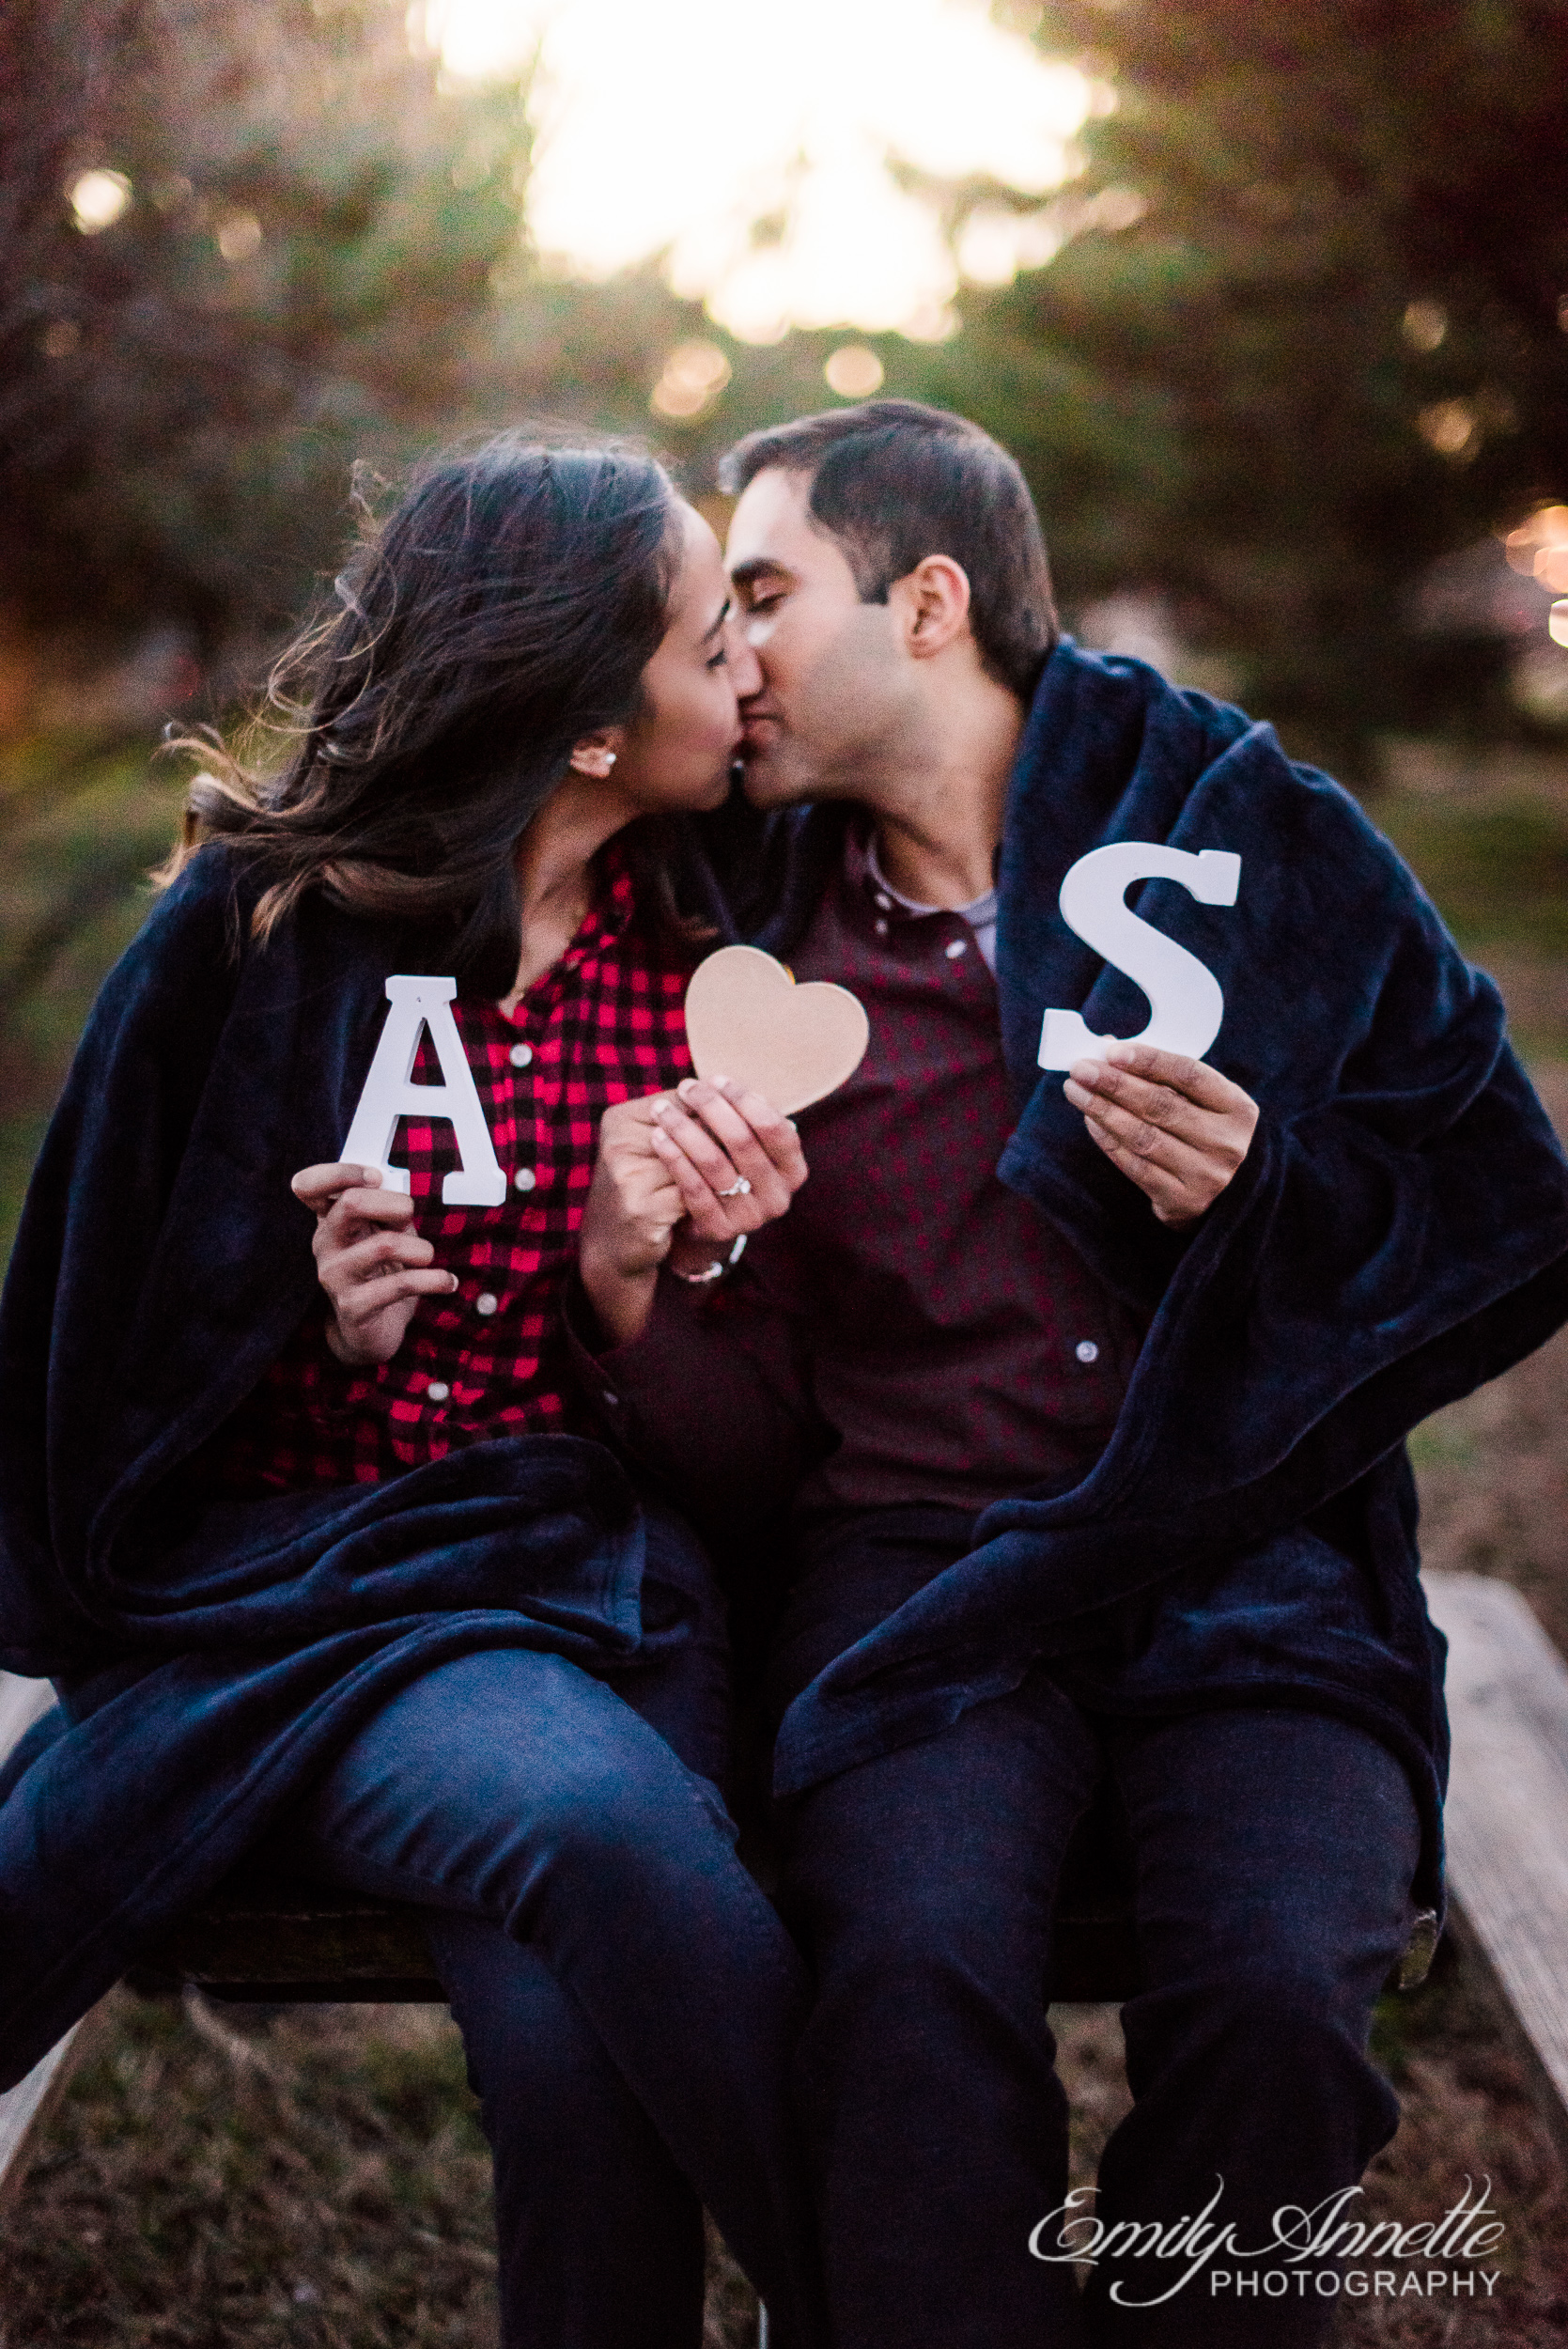 An engaged couple holds up cutouts of their initials while sitting on a picnic table at Gravelly Point Park in Arlington Virginia for an engagement session